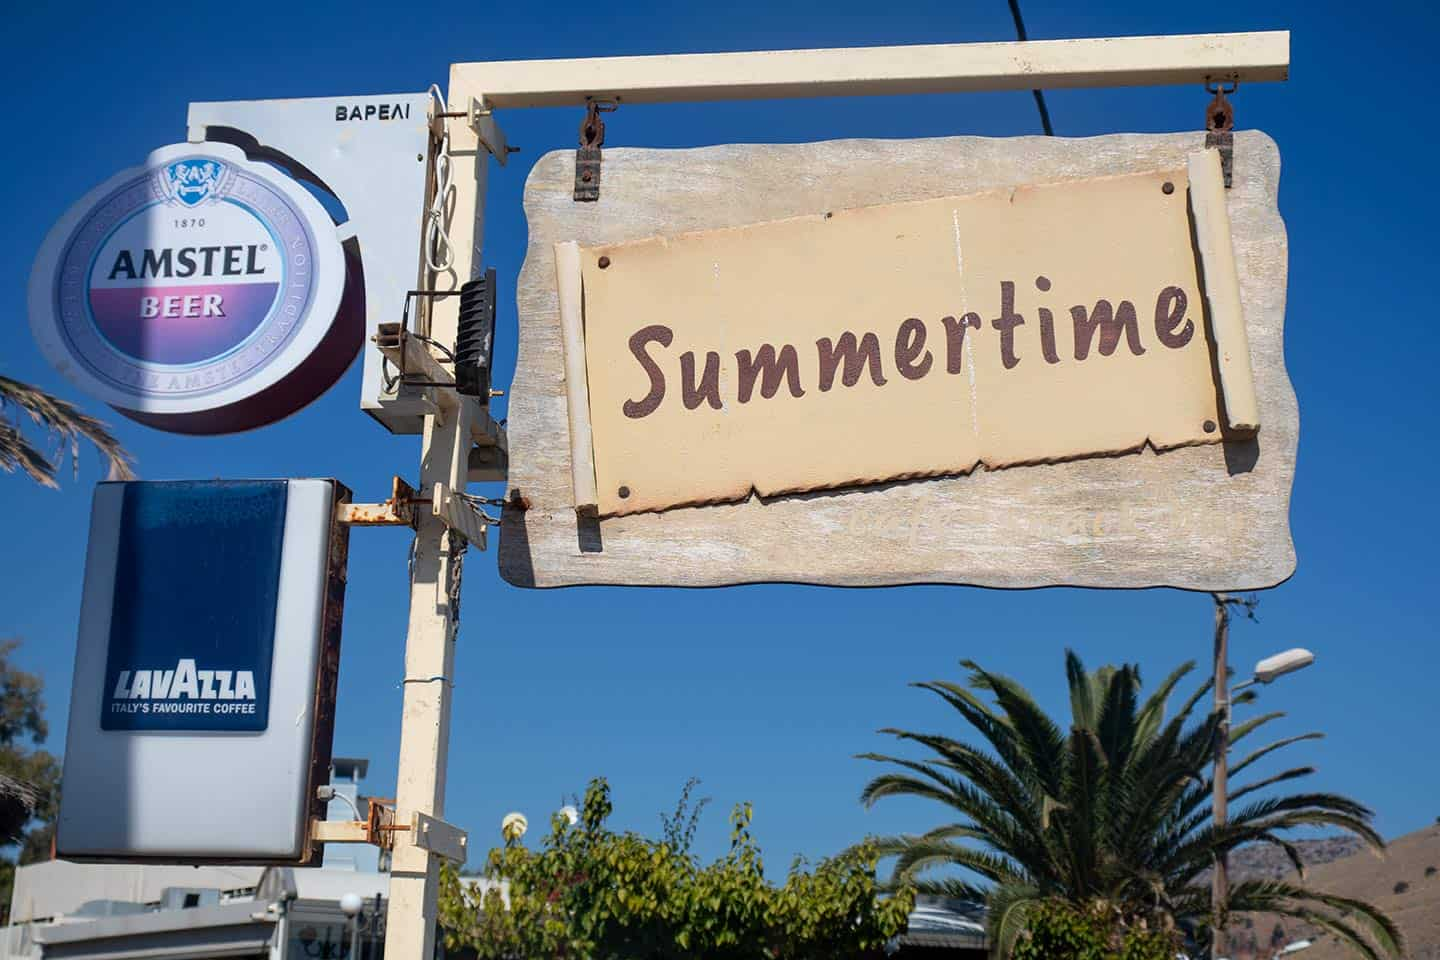 Image of the Summertime cafe sign in Georgioupolis village